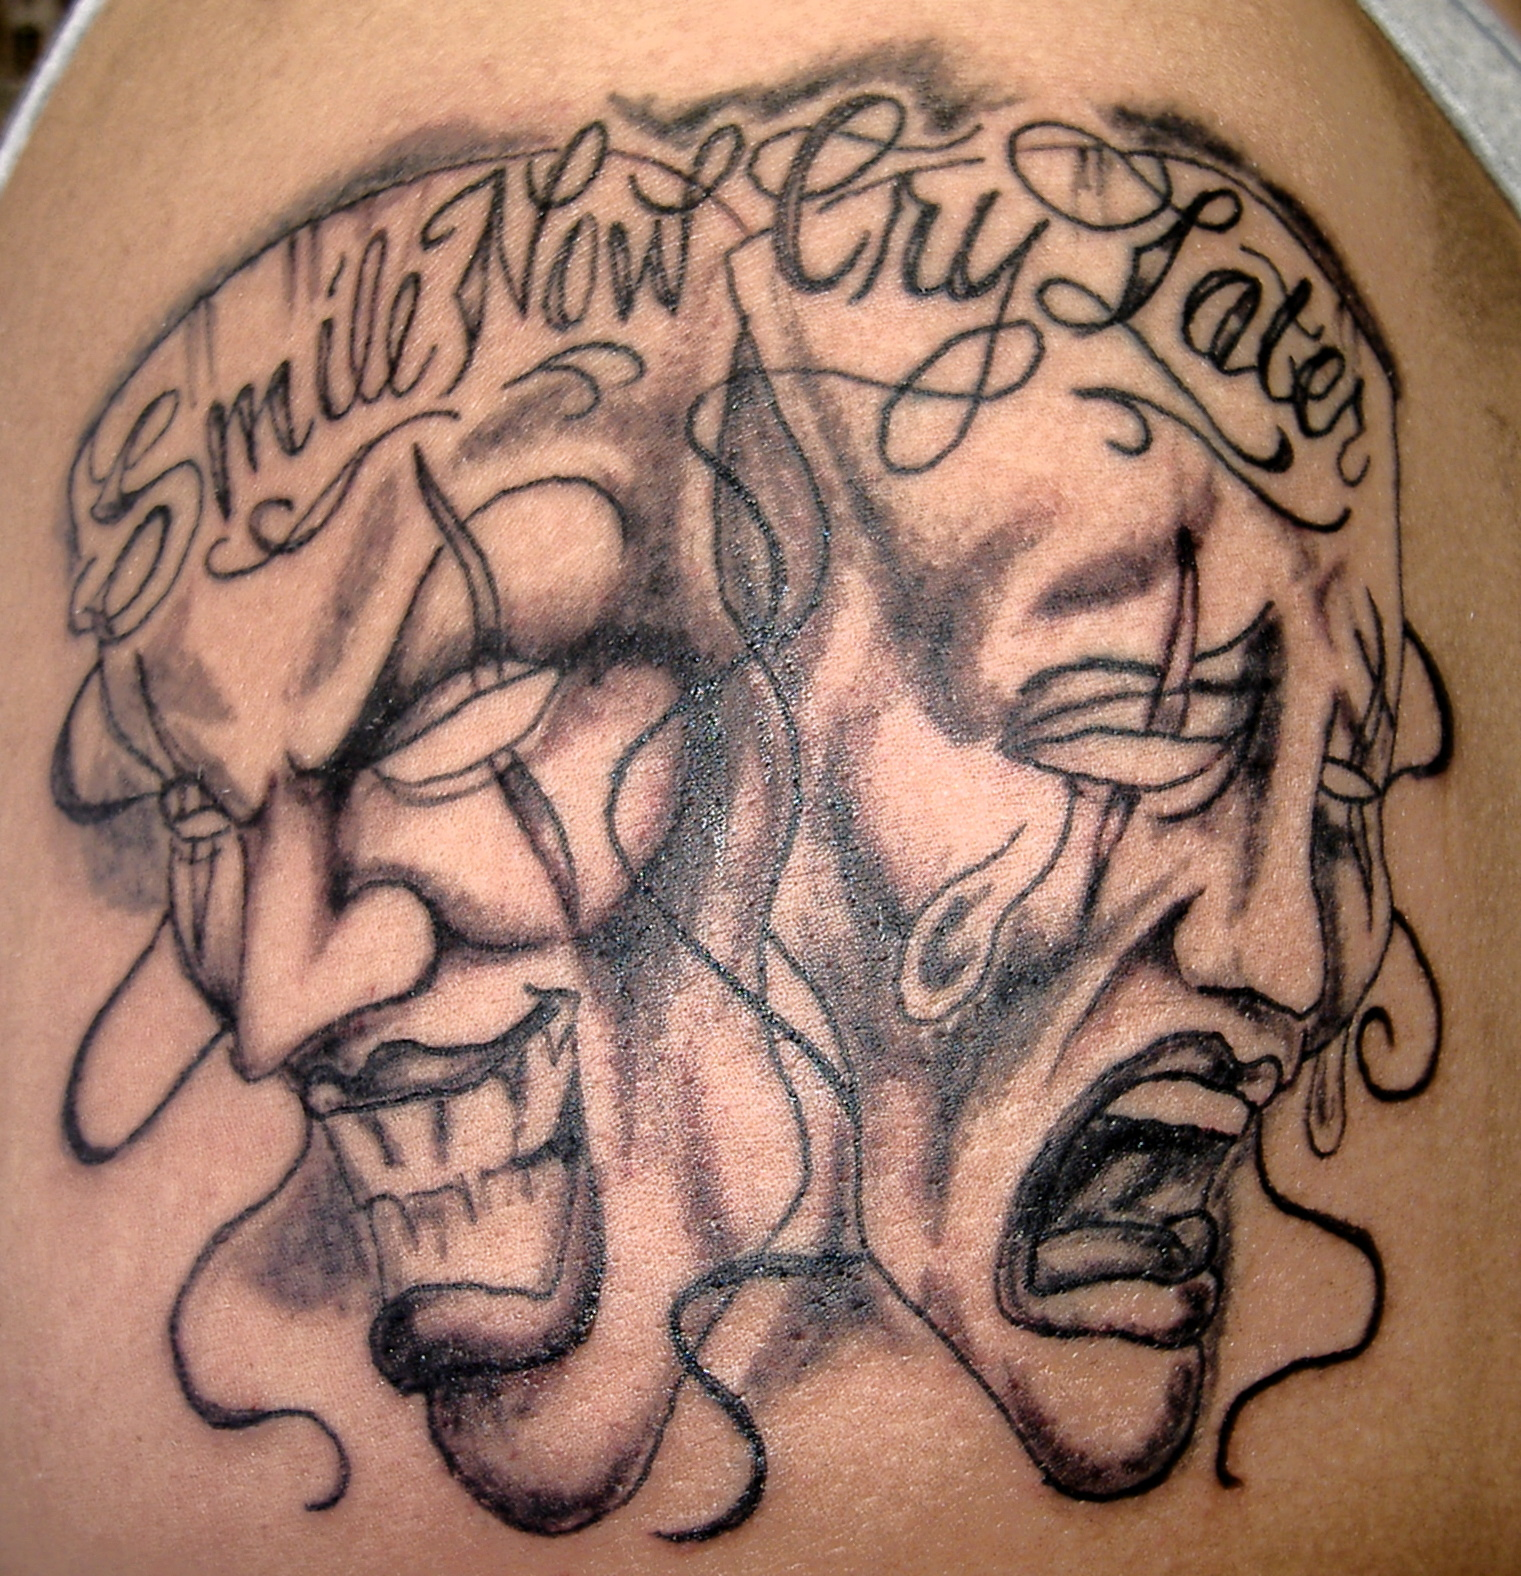 Smile Now Cry Later Tattoo: Jonat: Knowing Tattoo Pictures Laugh Now Cry Later